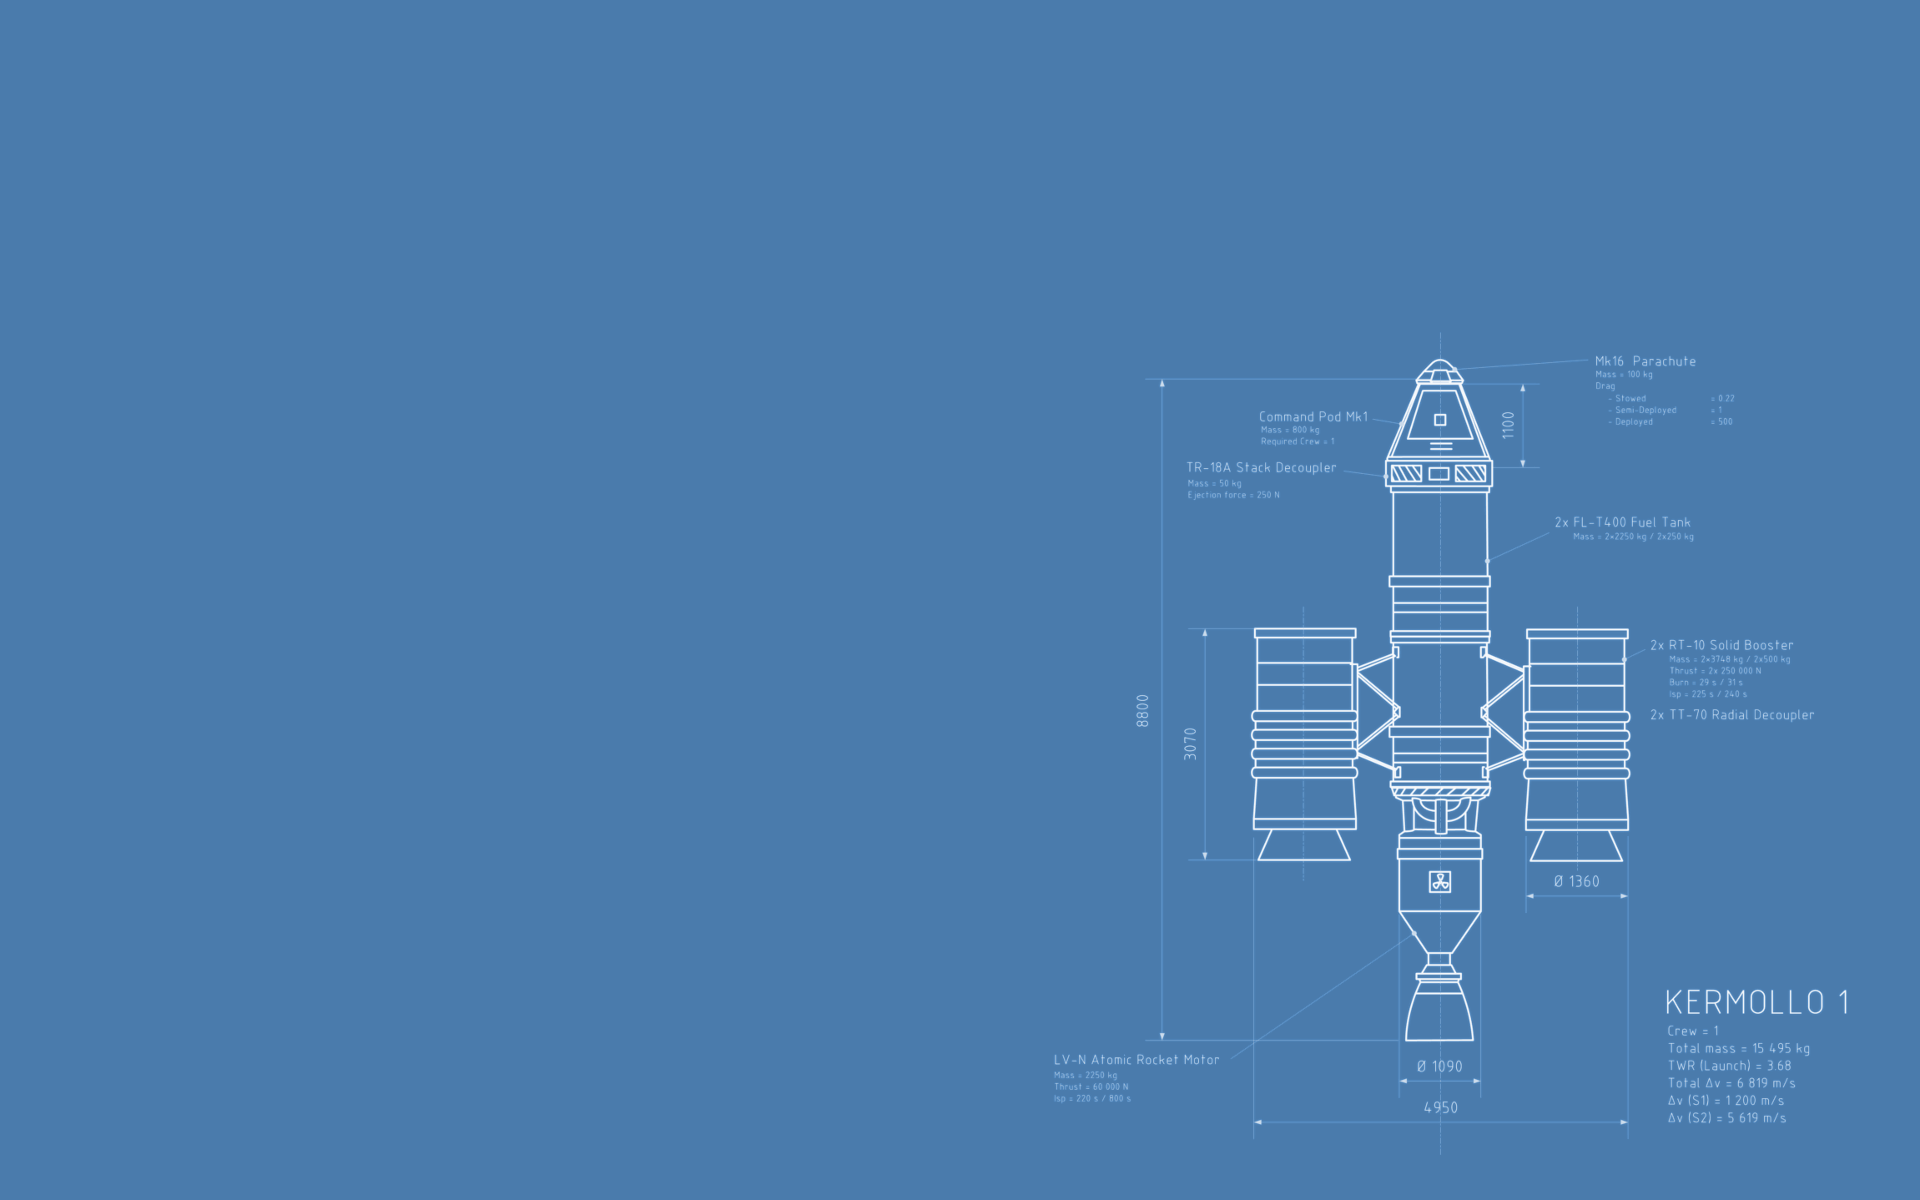 45 widescreen hdq wallpapers of blueprint for windows and mac systems blueprint wallpapers 1920x1200 wallpapers pc gallery malvernweather Choice Image